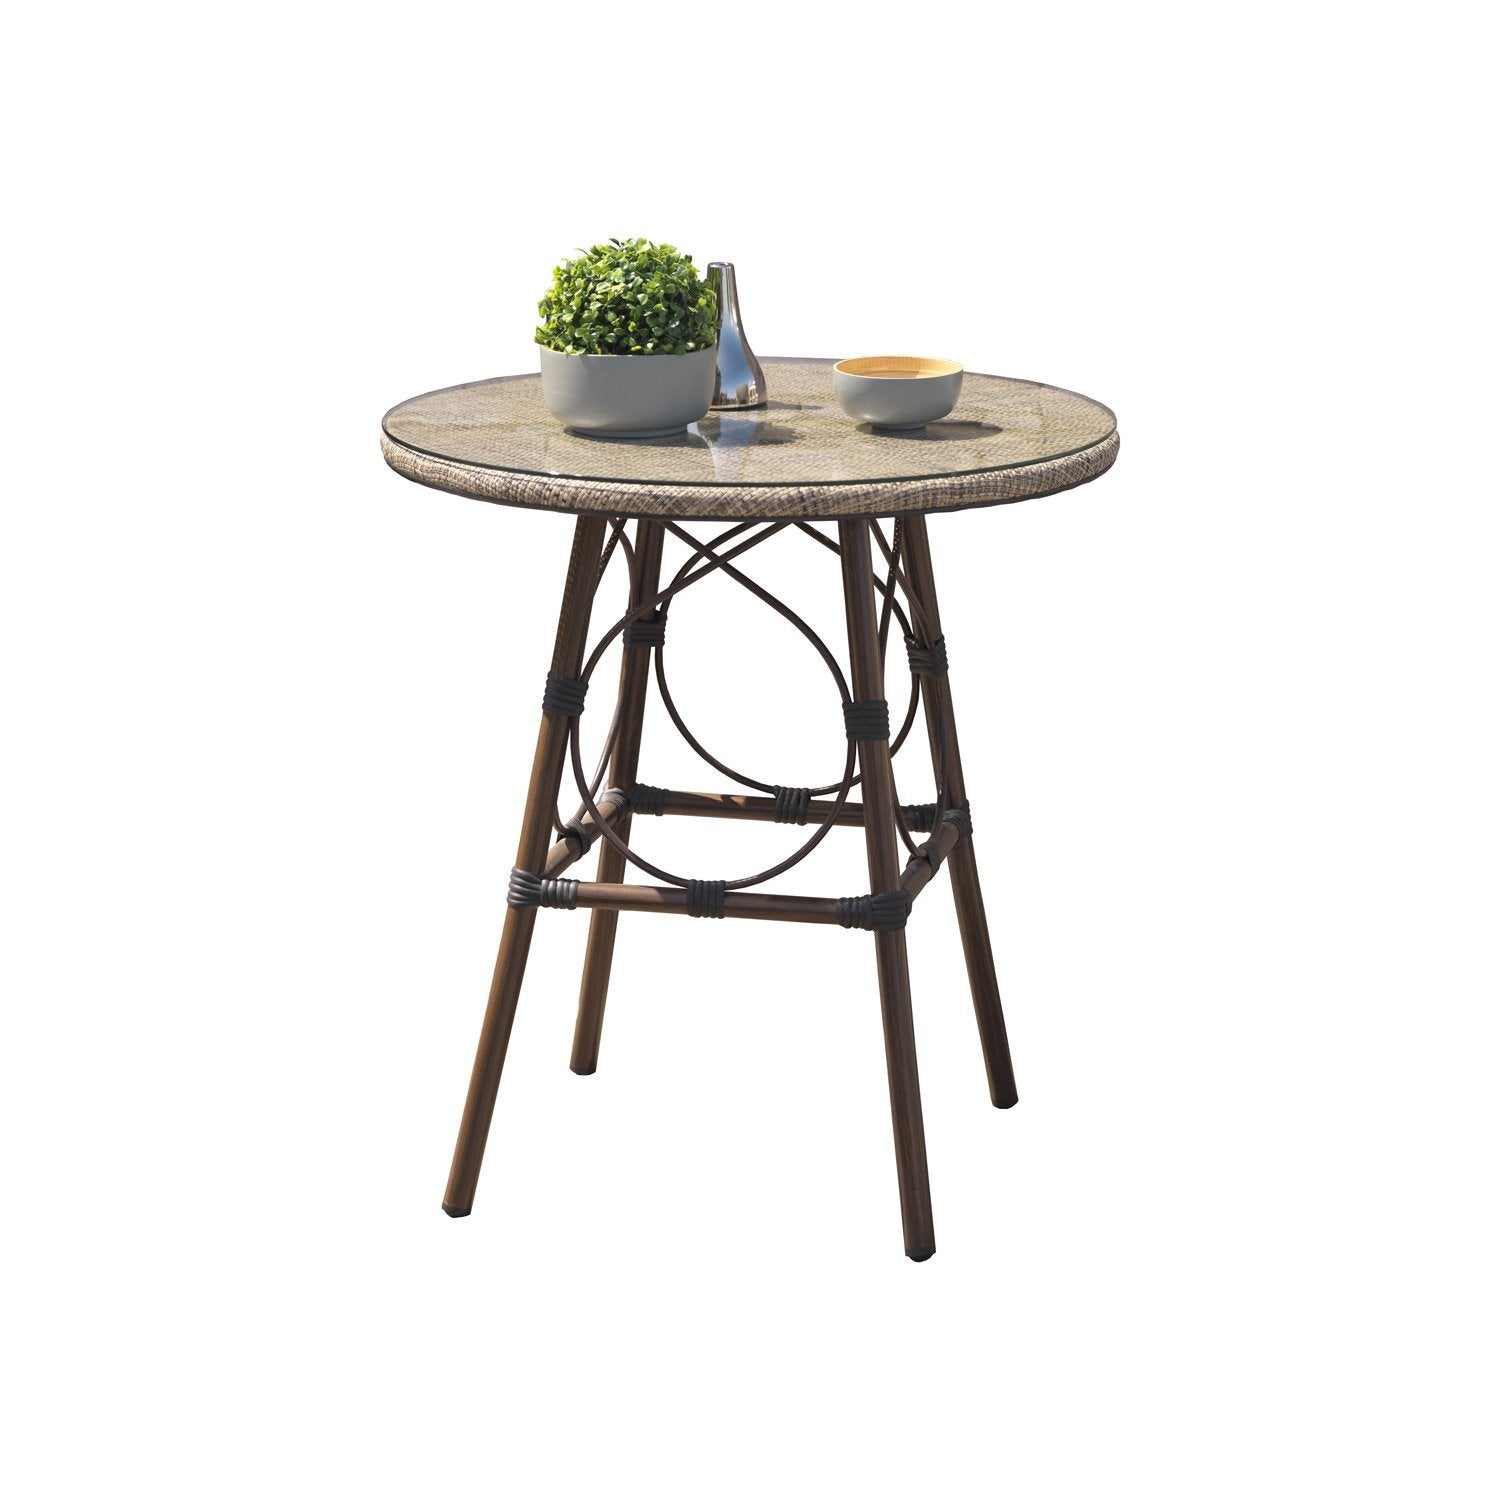 Table de jardin marius ronde lin 2 personnes leroy merlin - Leroy merlin table pliante ...